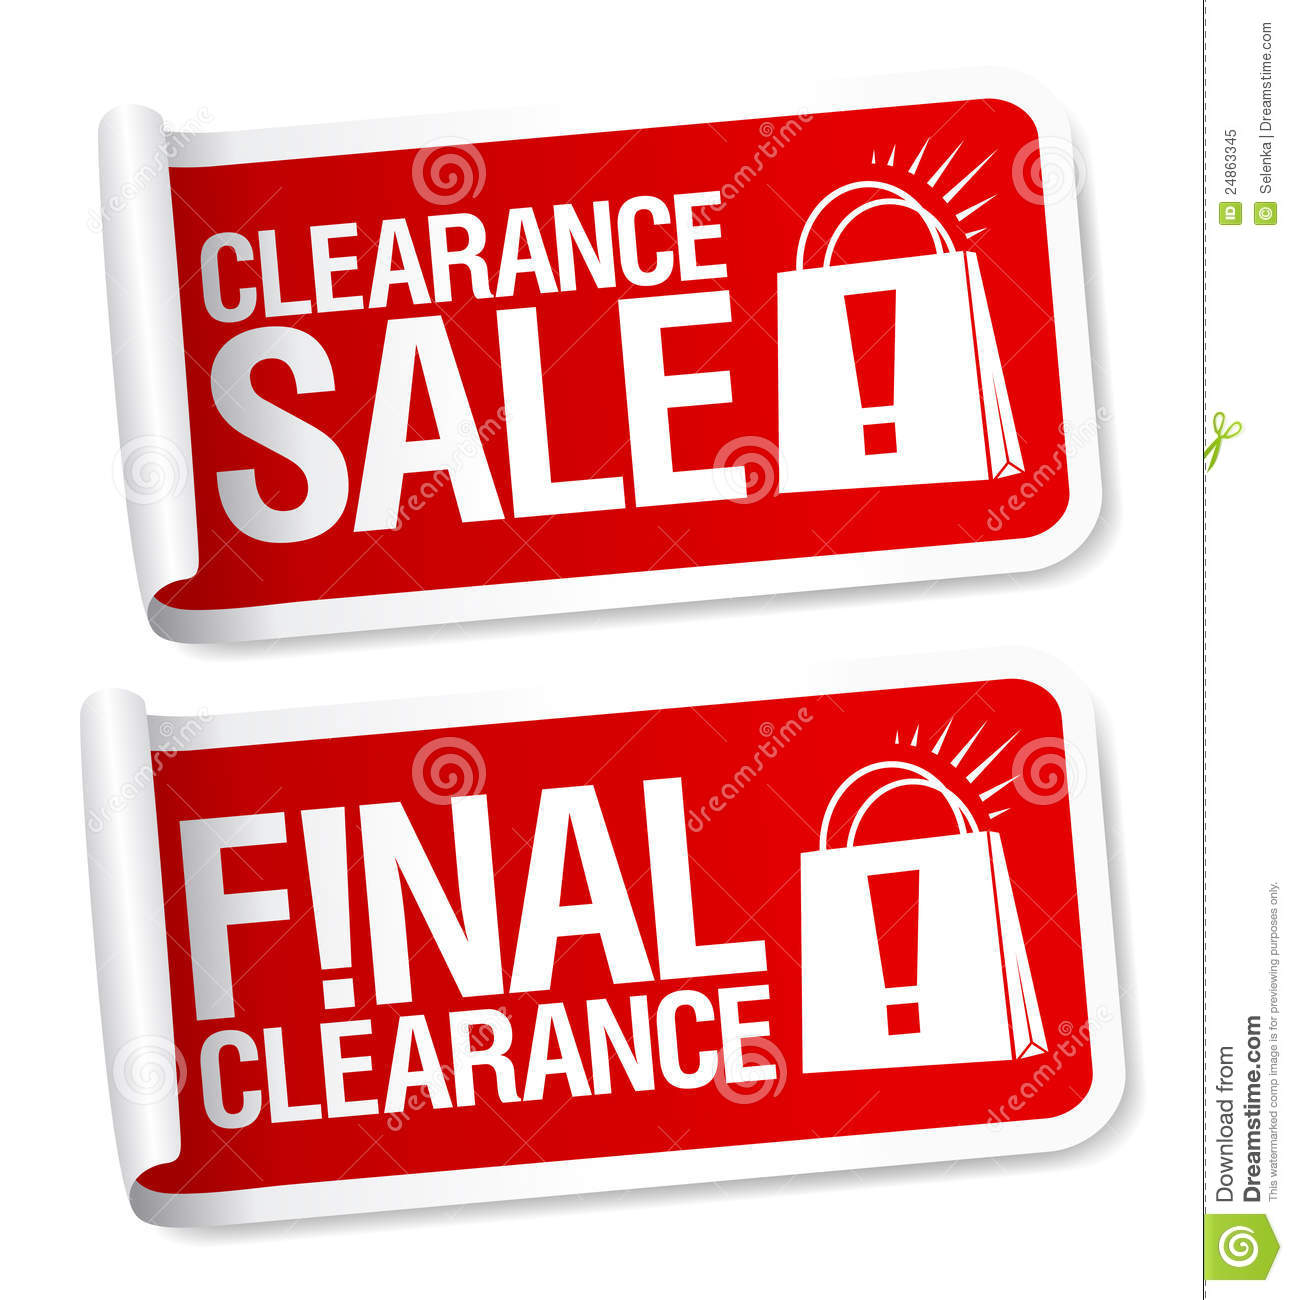 Score the best deals on HSN products at the Clearance Store. See what's recently been marked down to clearance prices on dirtyinstalzonevx6.ga